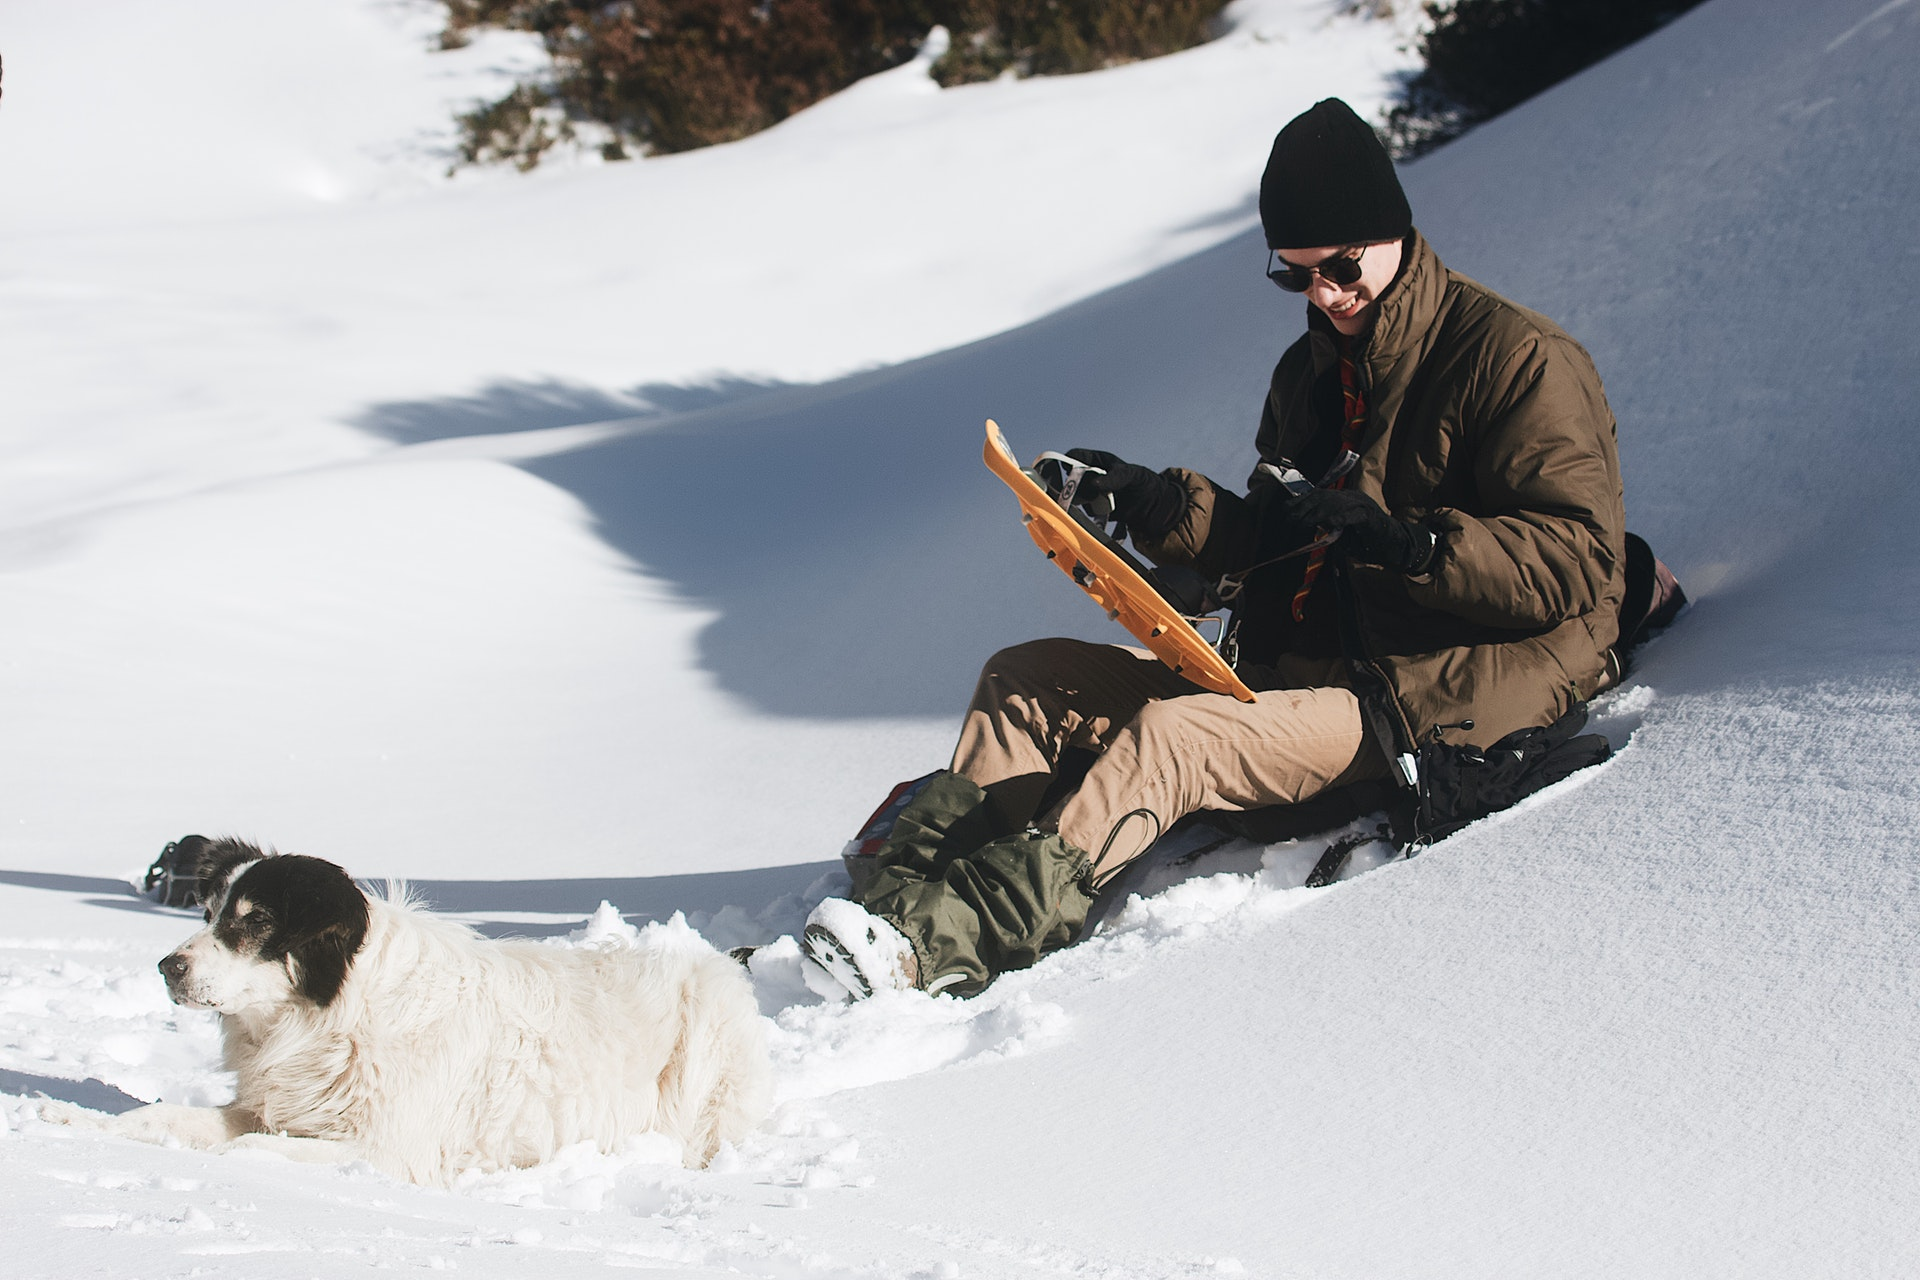 man-in-brown-jacket-and-black-pants-sitting-on-snow-covered-3604947